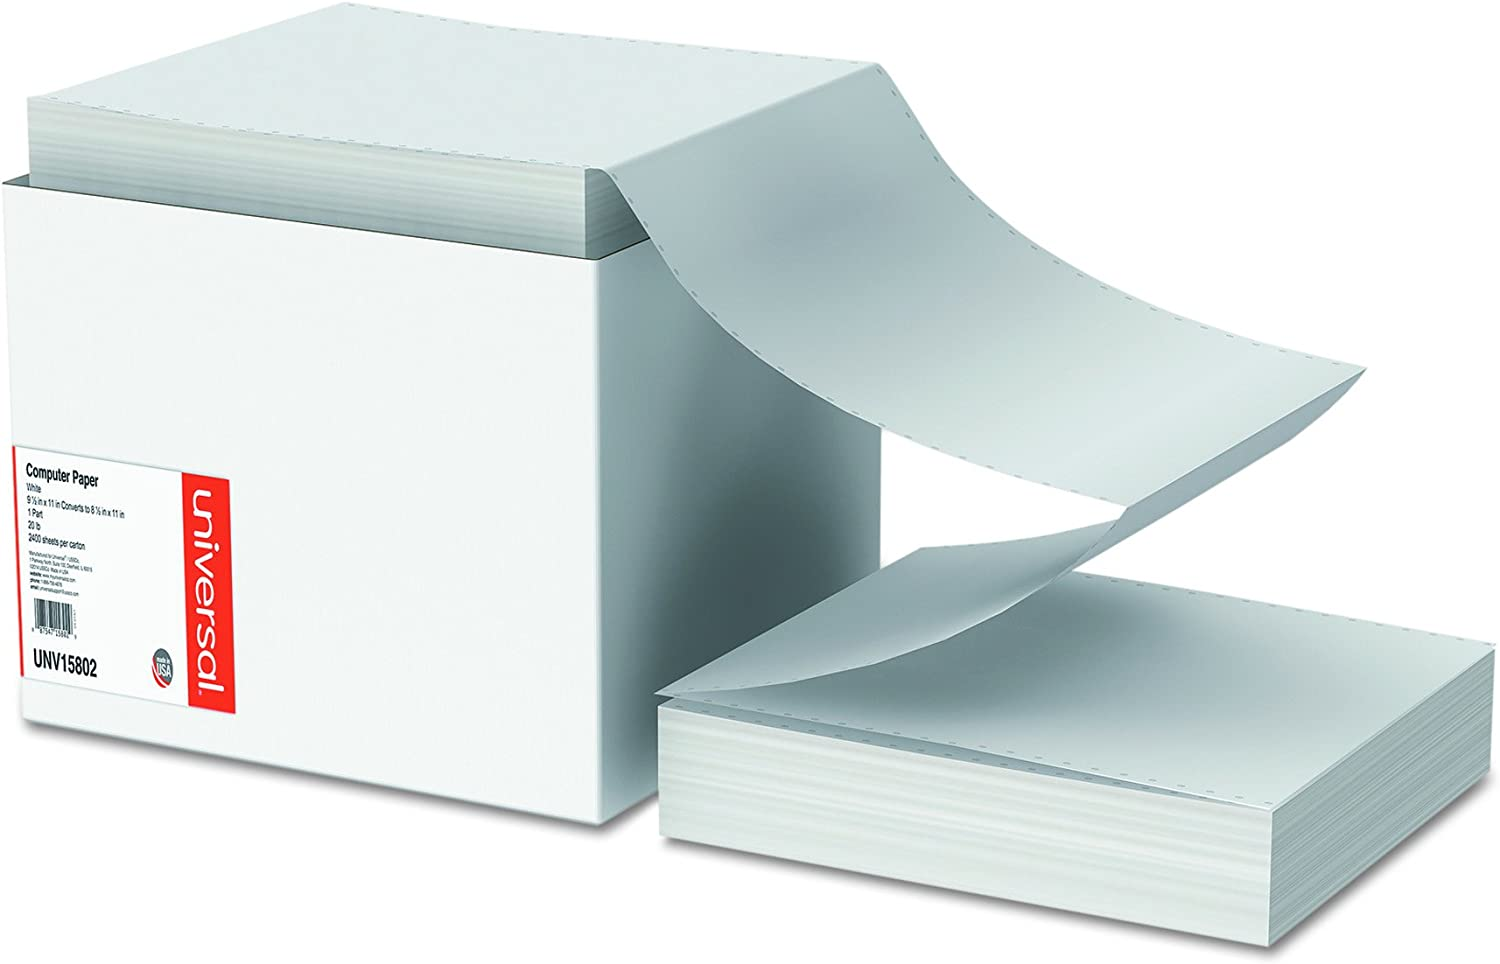 Universal 15802 Computer Paper, 20lb, 9-1/2 x 11, Letter Trim Perforations, White (Case of 2400 Sheets)